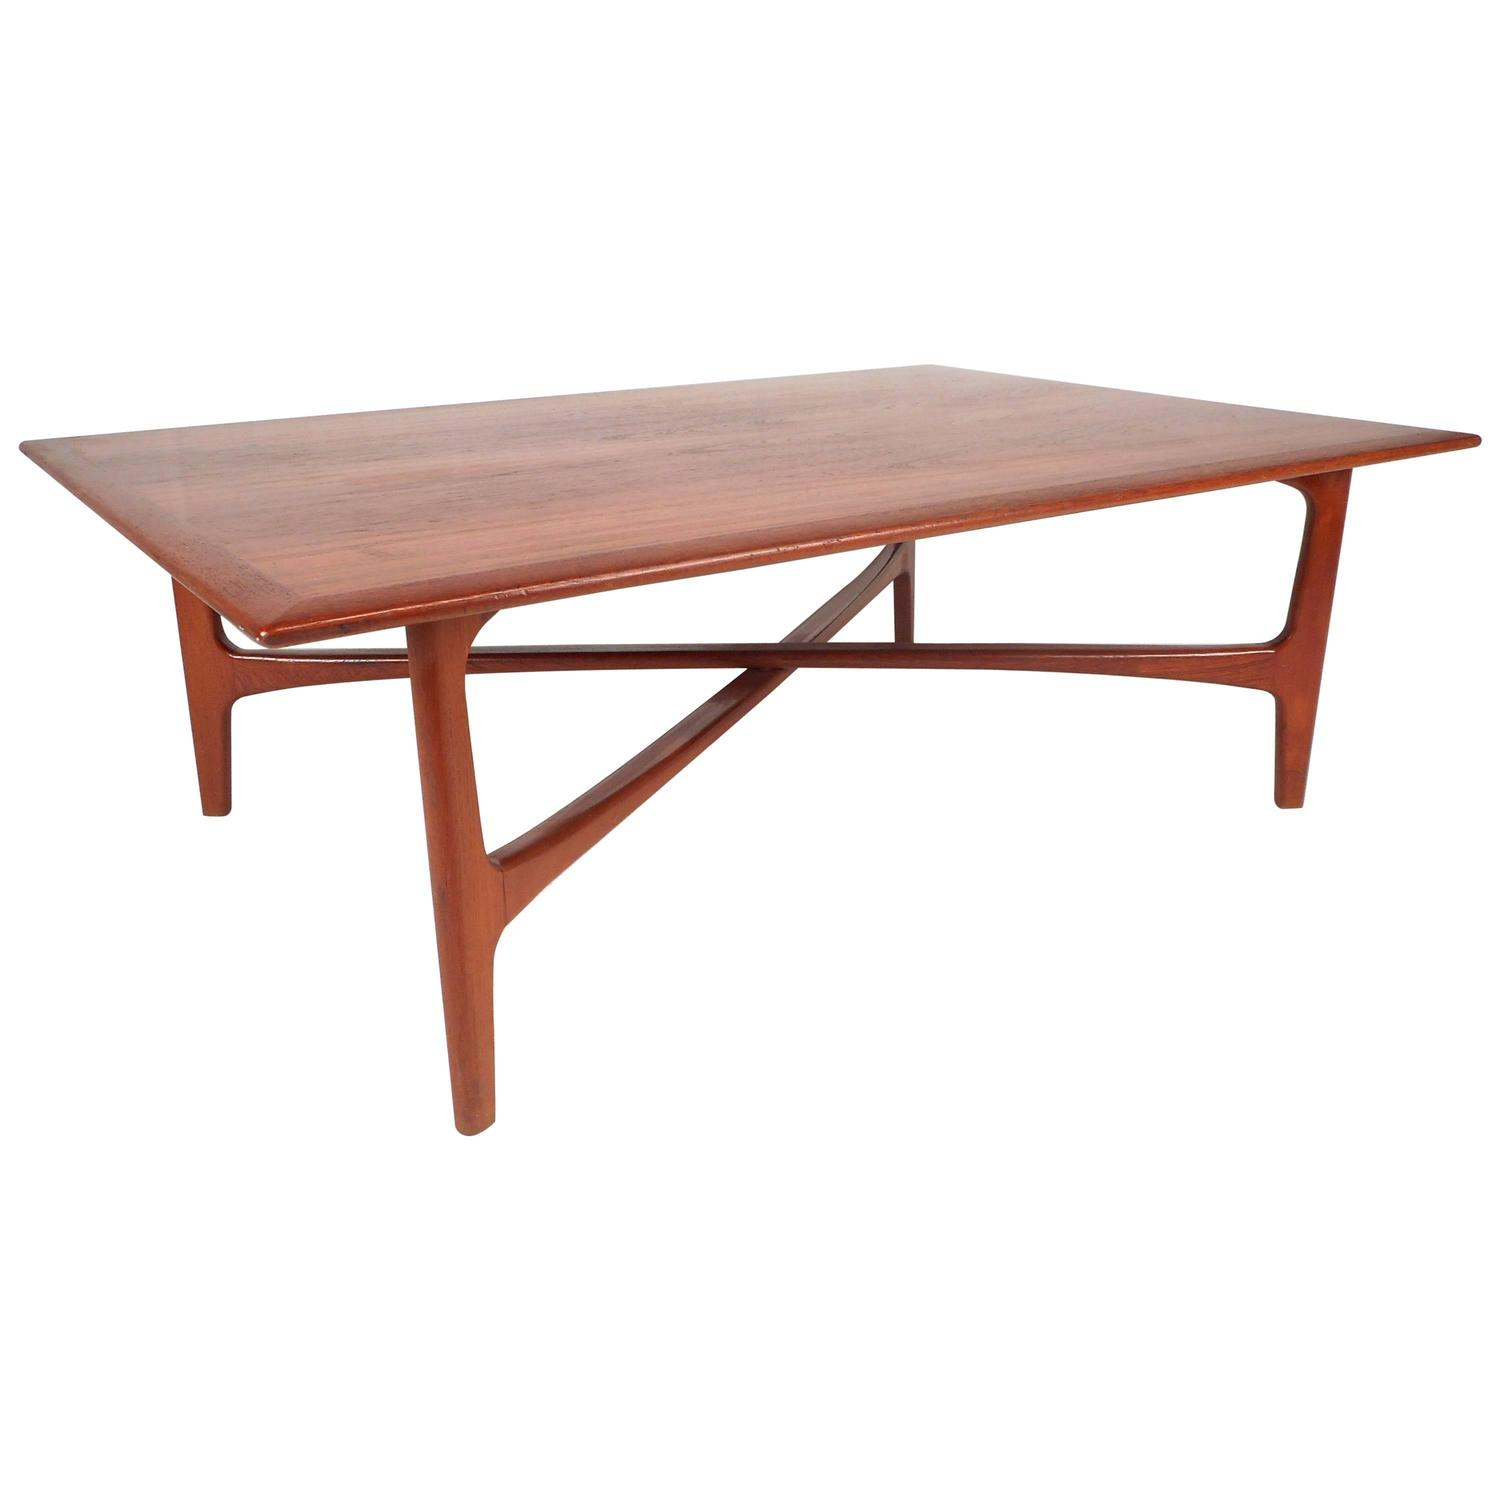 Danish modern staved large solid teak coffee table from denmark mid century modern oversized danish teak coffee table by dux furniture geotapseo Gallery